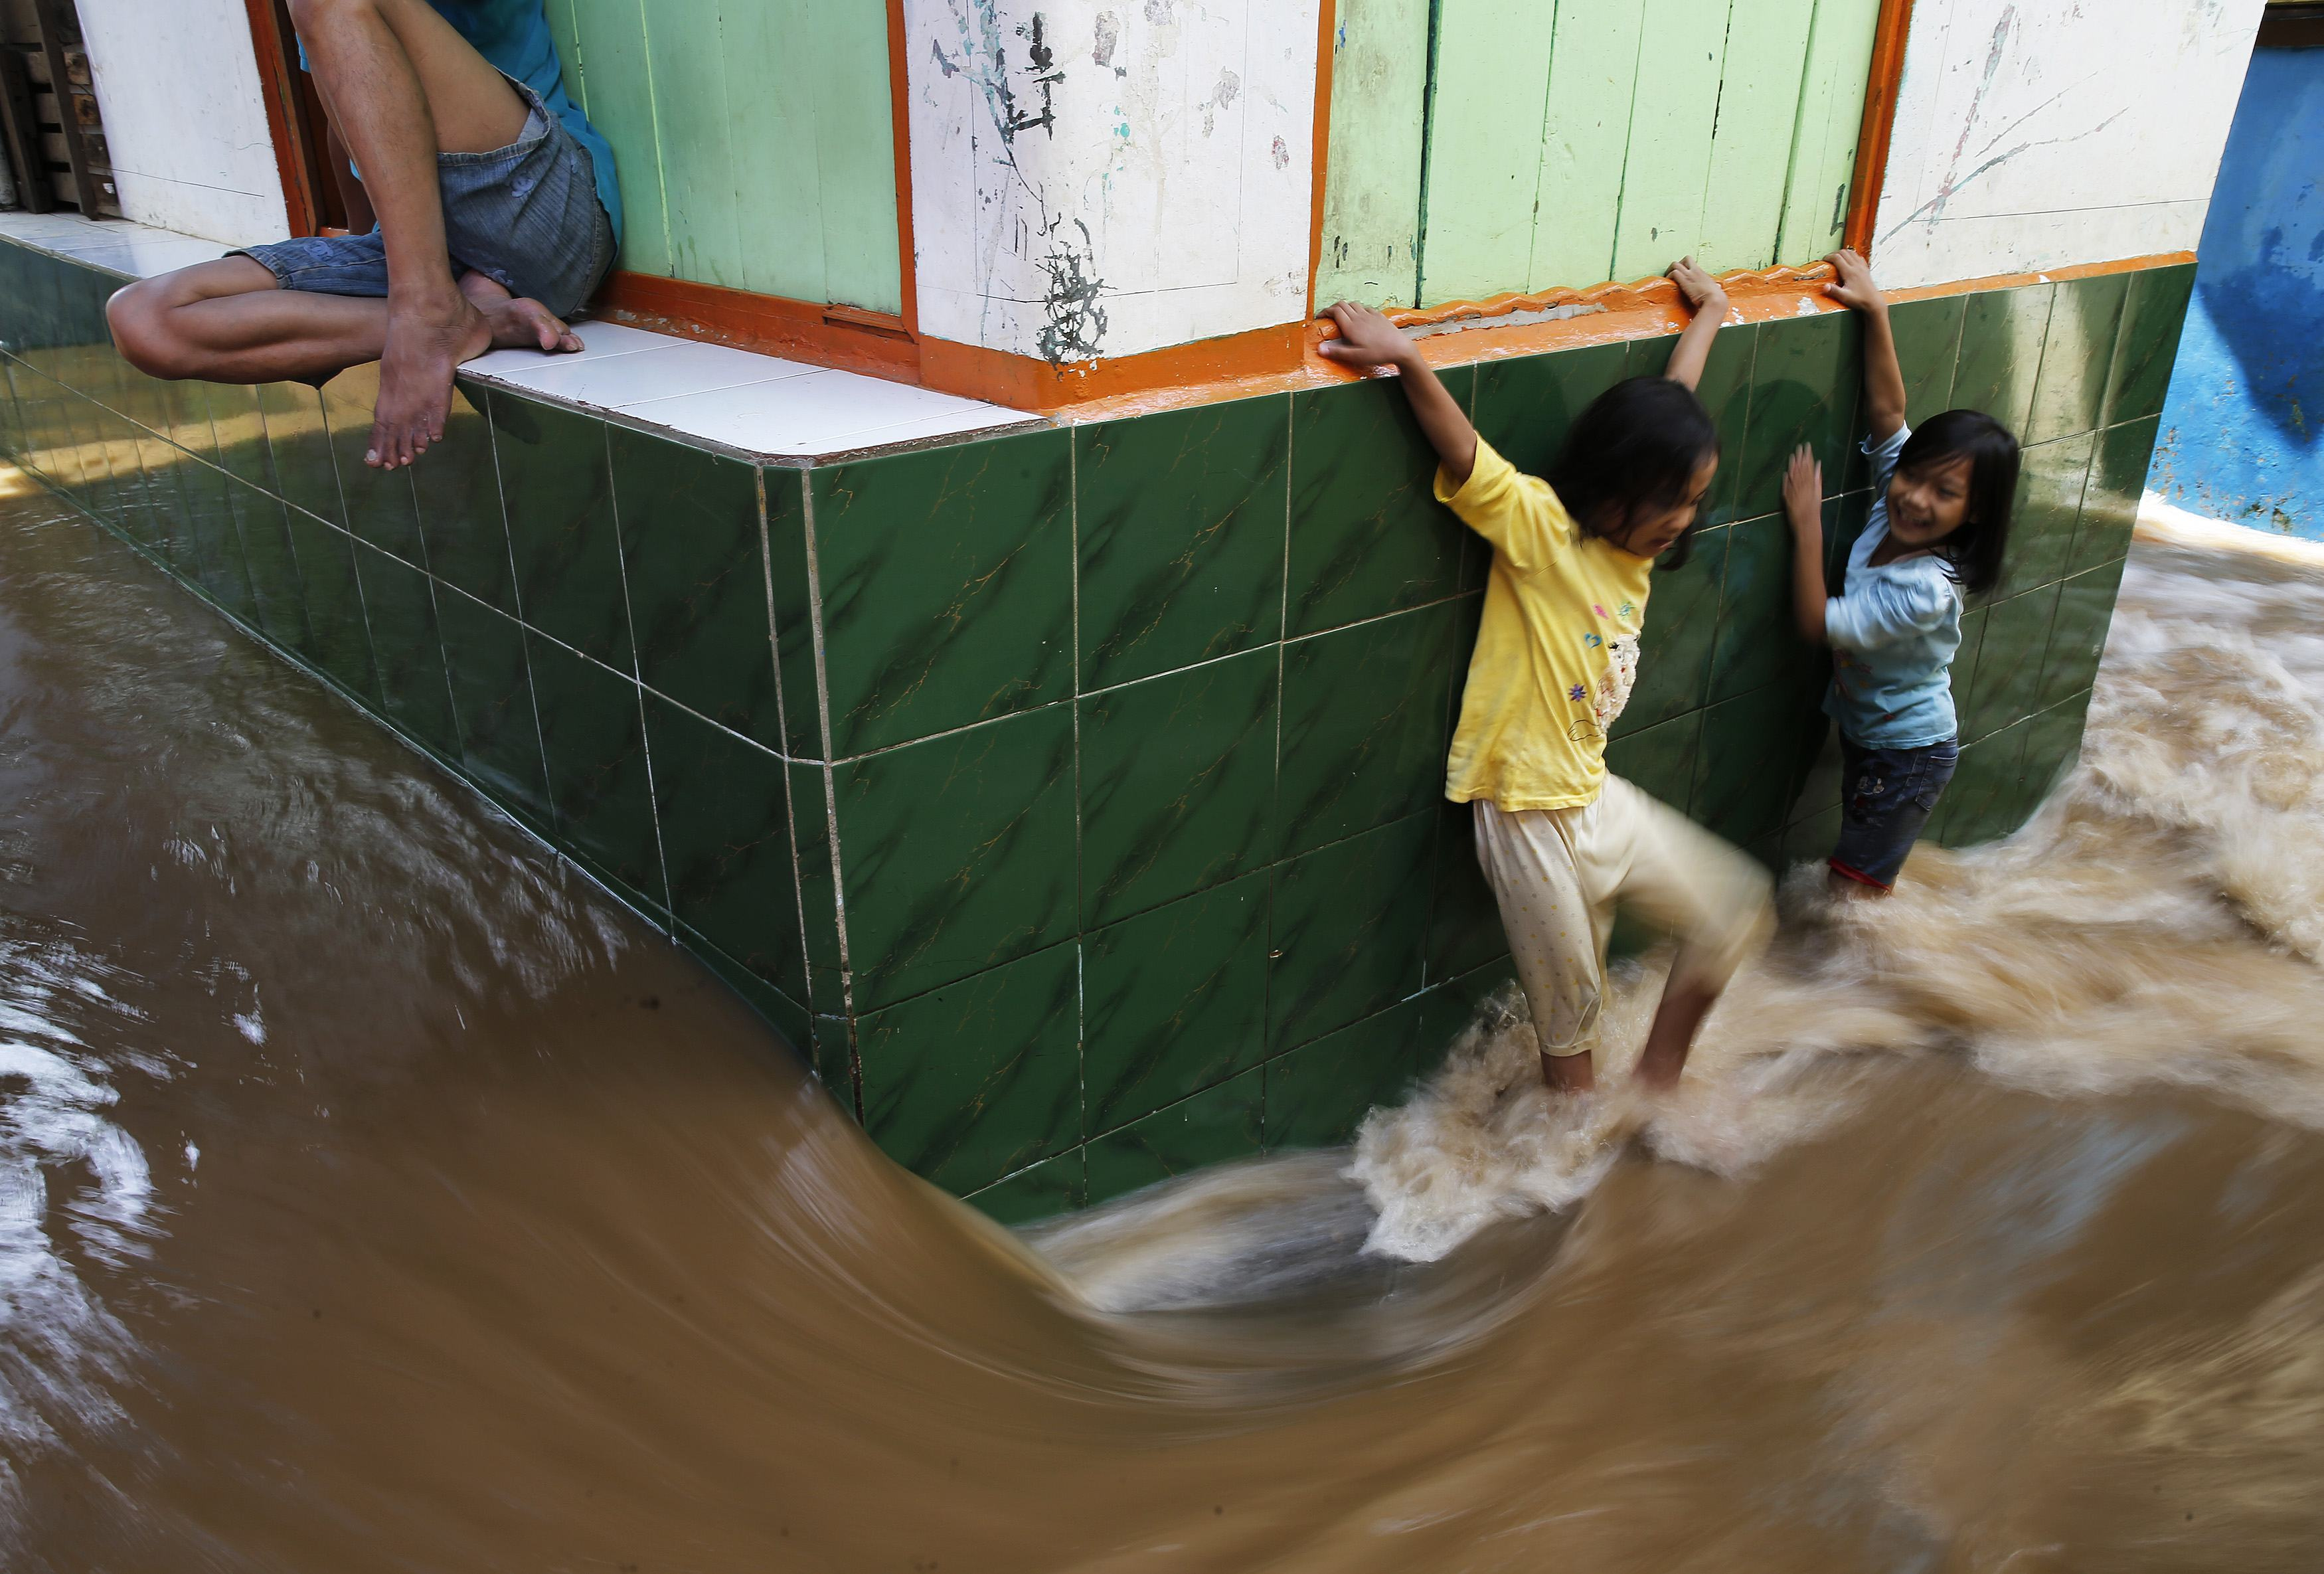 Children try to walk through a flooded street at Kampung Melayu residential area in Jakarta